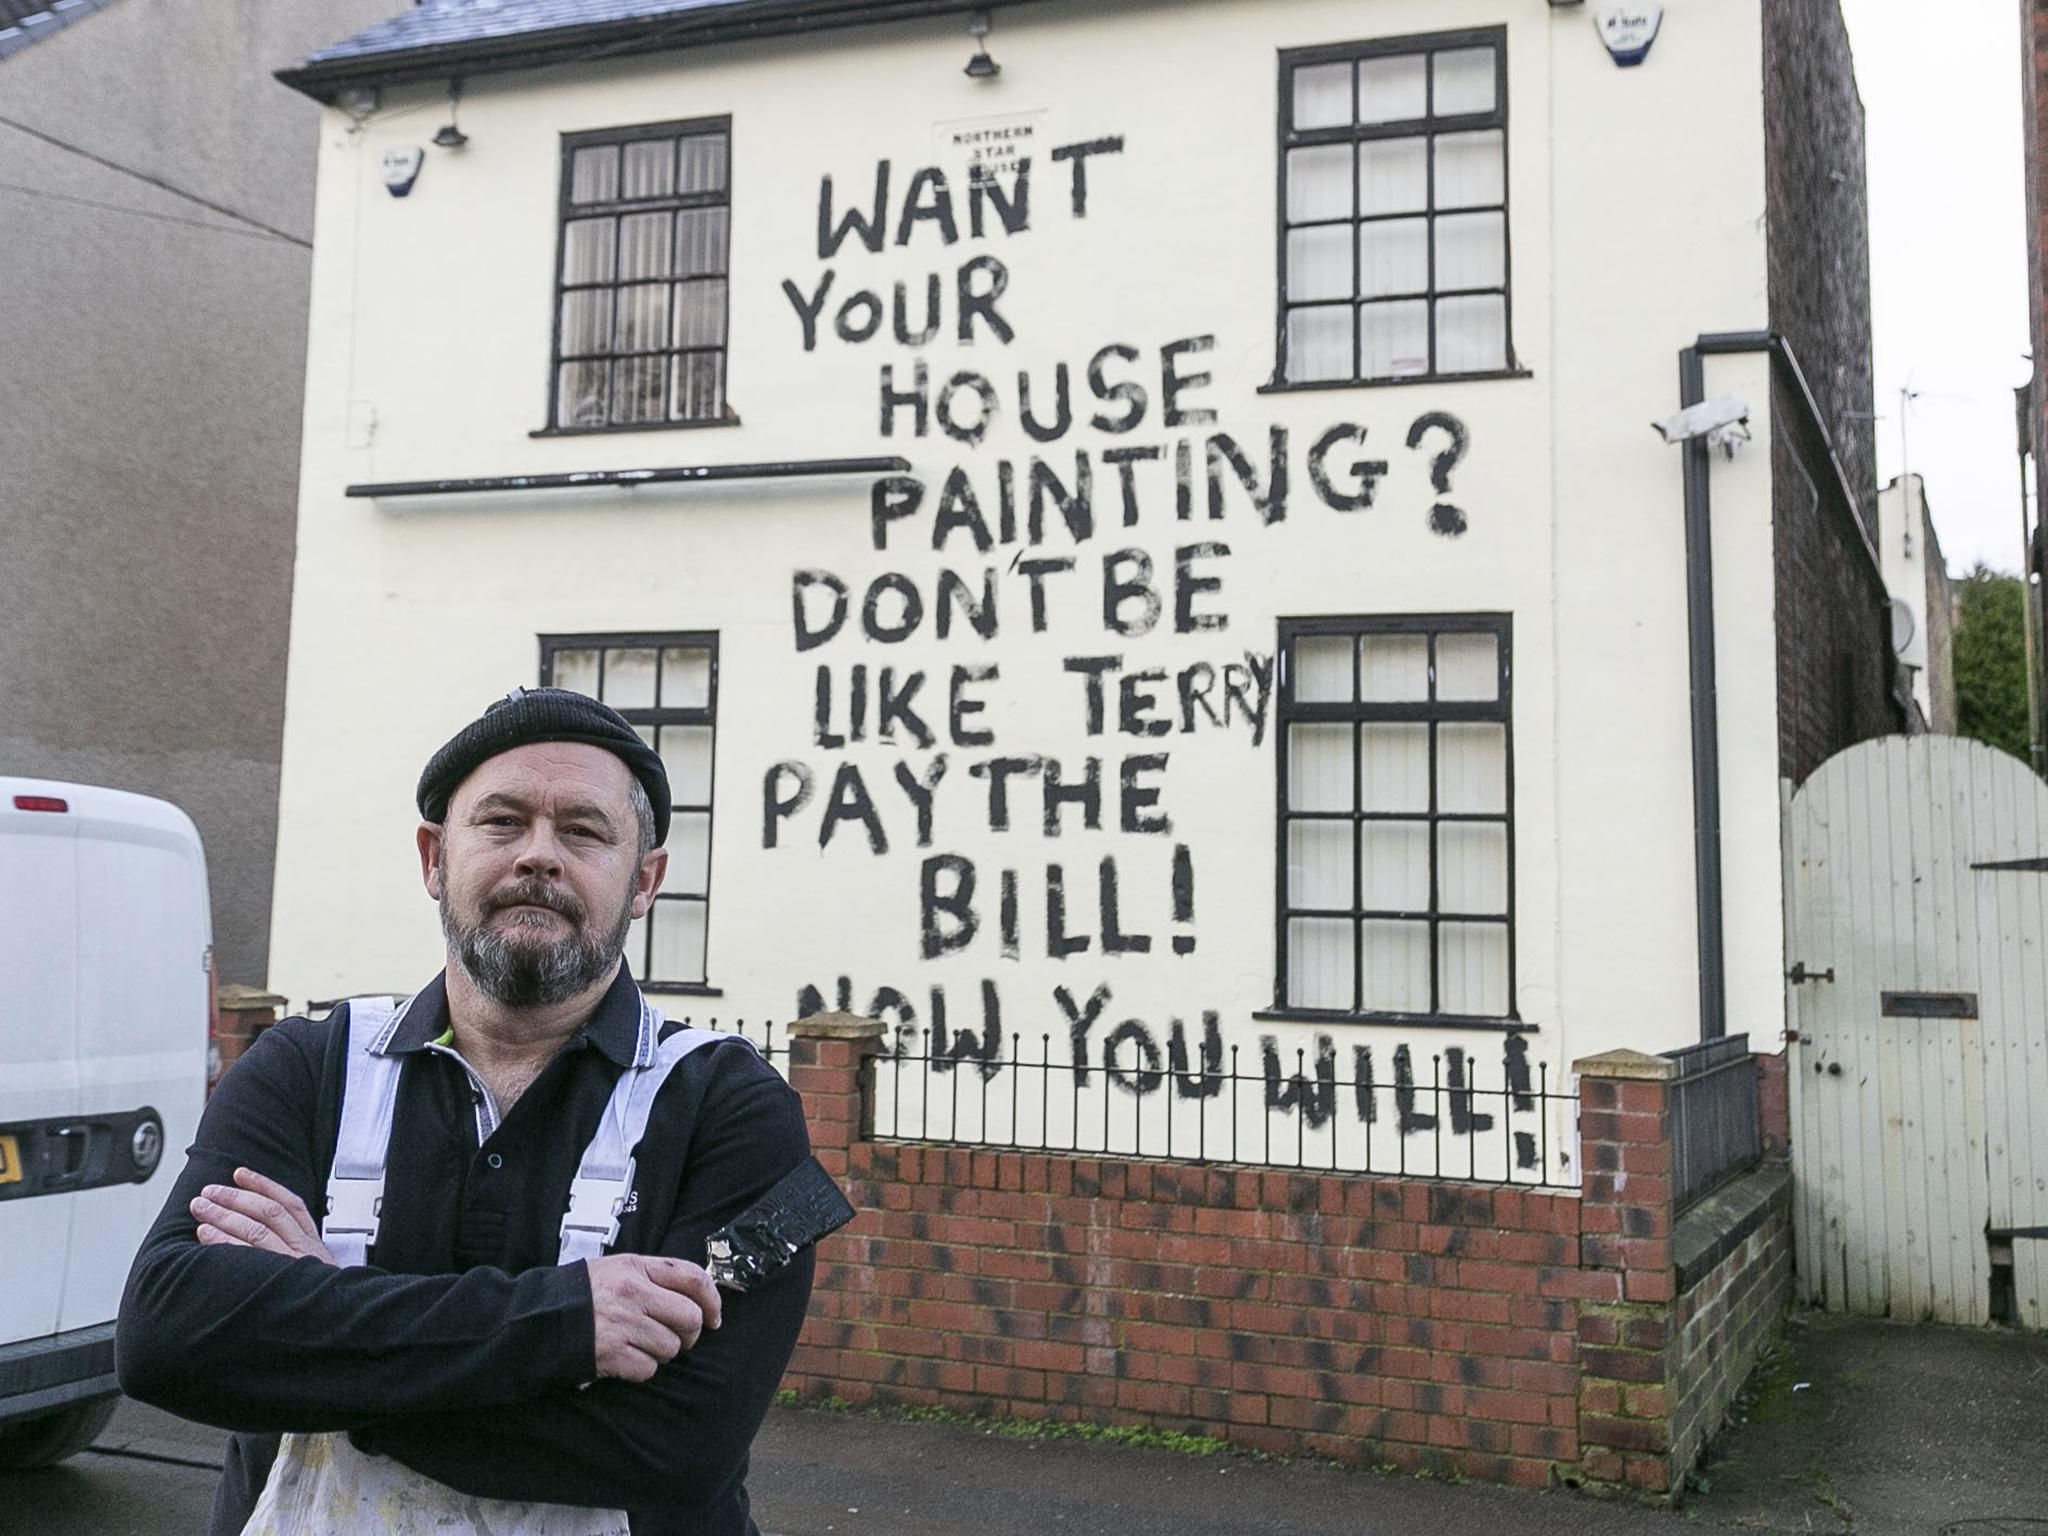 'Don't be like Terry, pay the bill!' Disgruntled painter daubs messa…